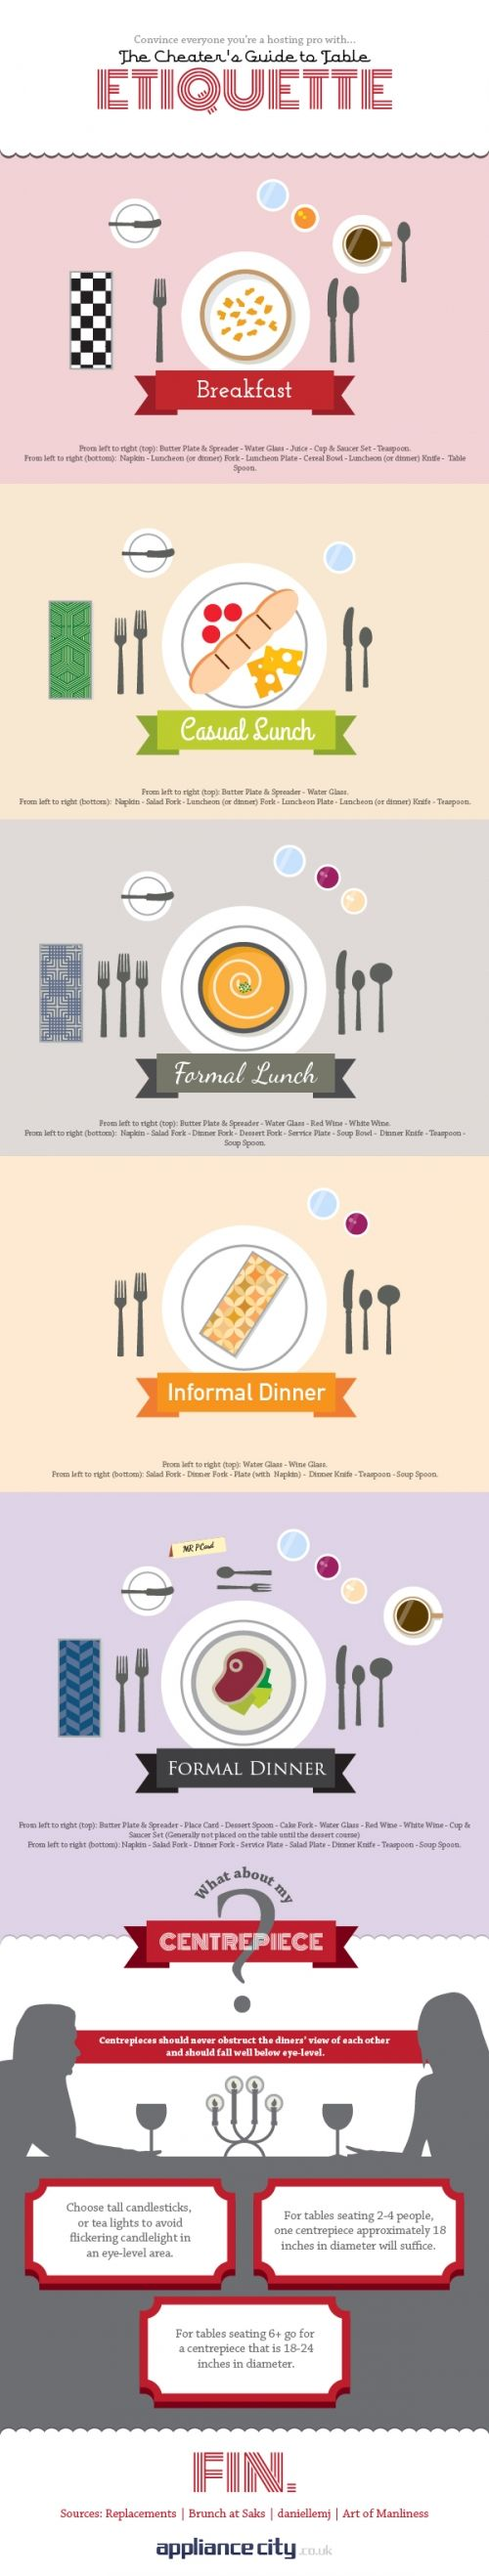 #Infographic:The Importance of Table Etiquette for Impressing Guests